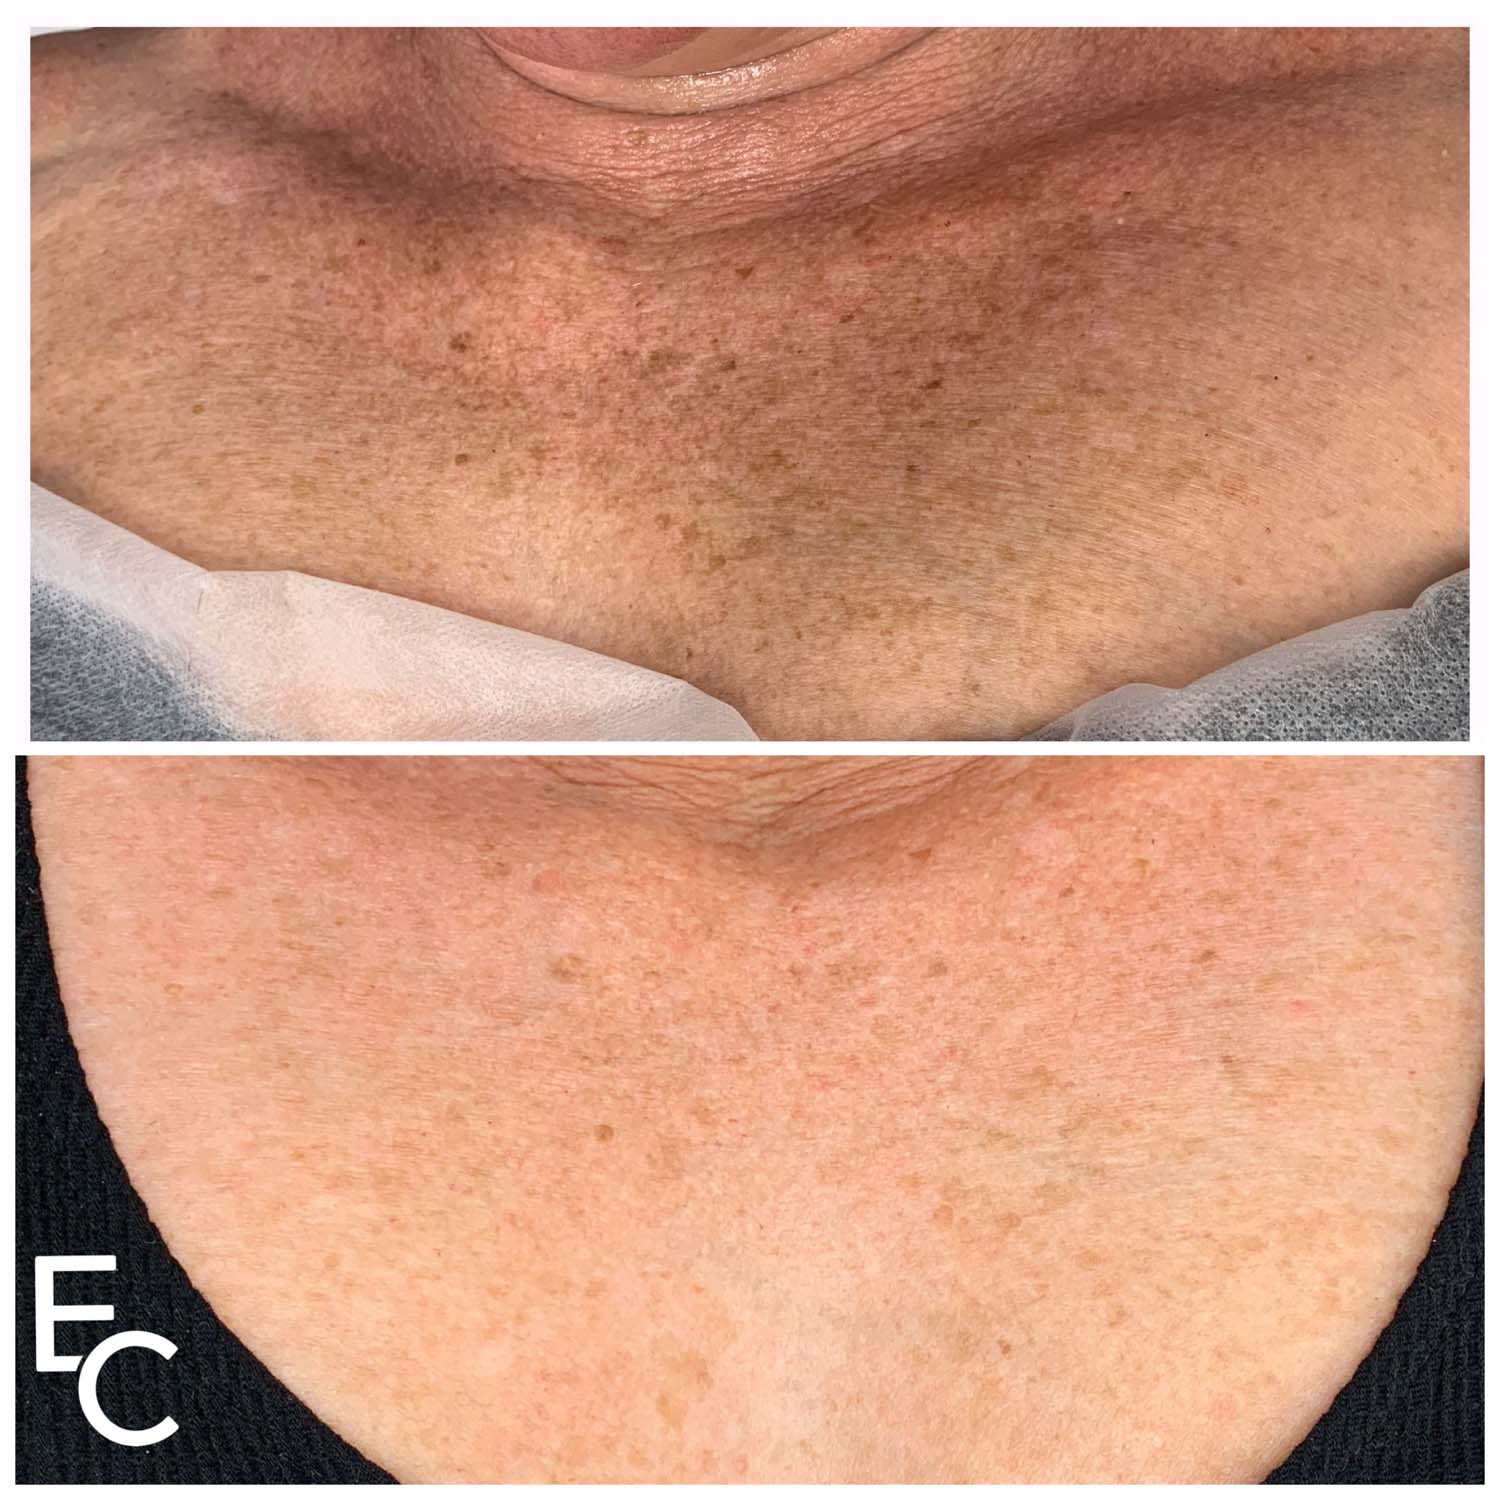 skin spots microneedling before and after